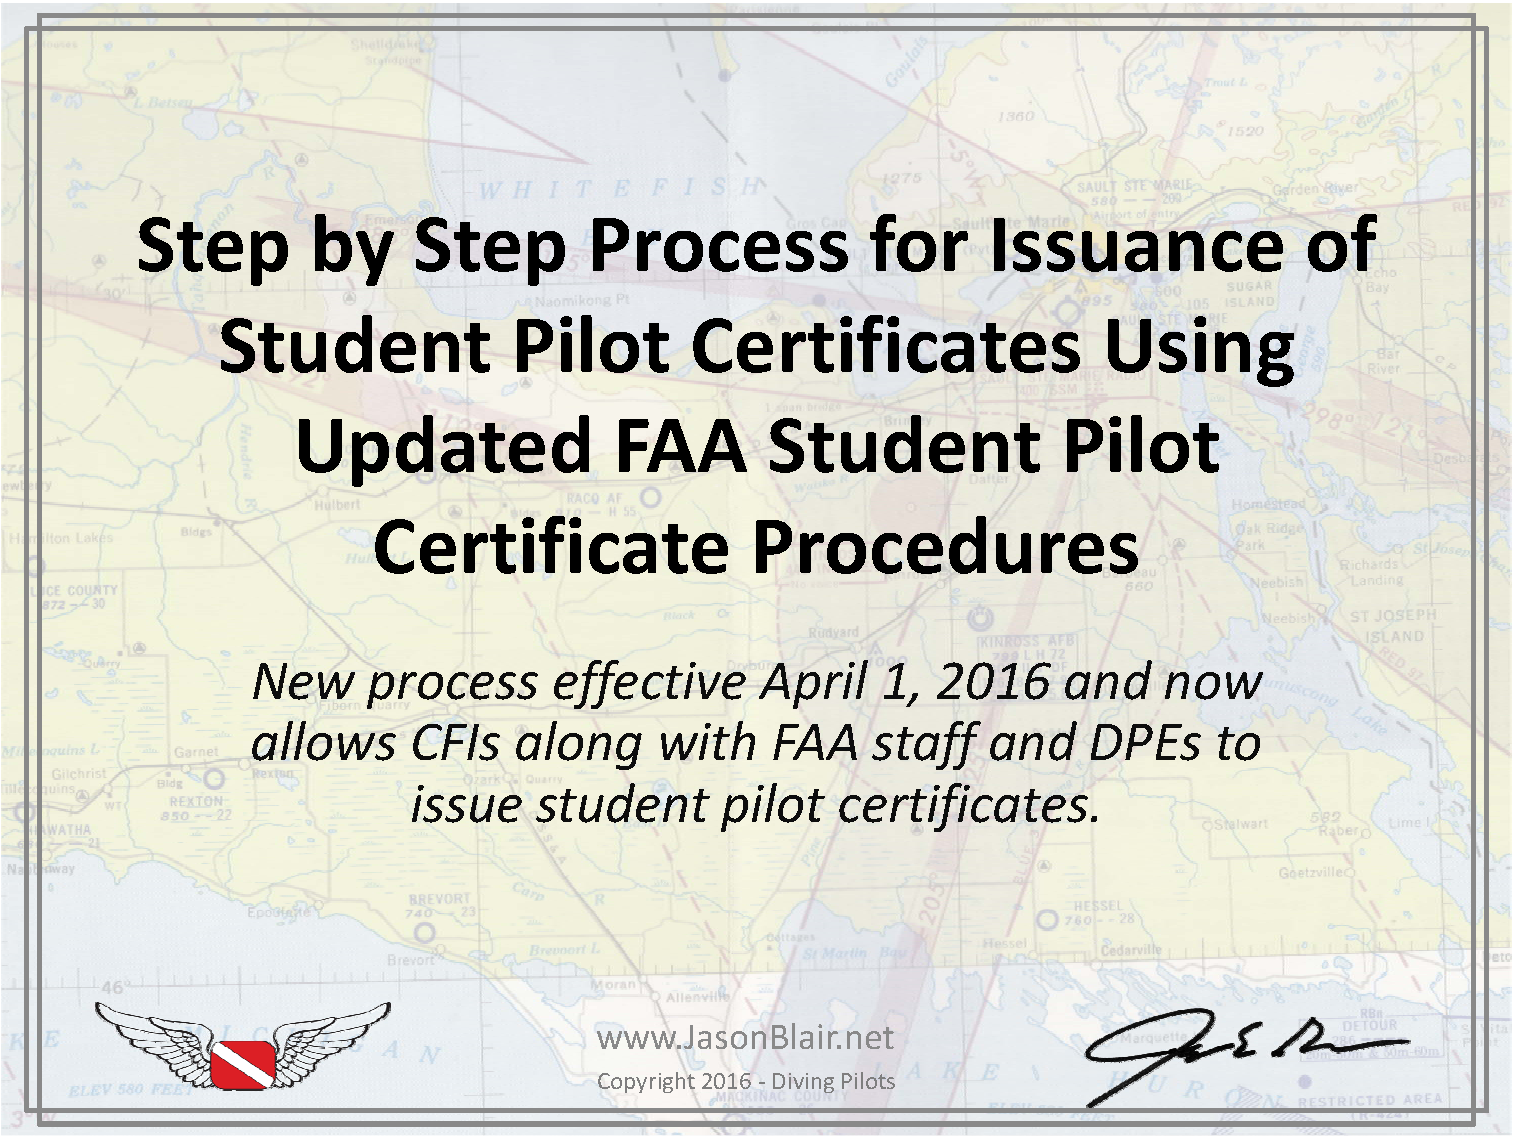 Faa pilot certificate images any certificate example ideas step by step process for issuance of student pilot certificates step by step process for issuance 1betcityfo Image collections